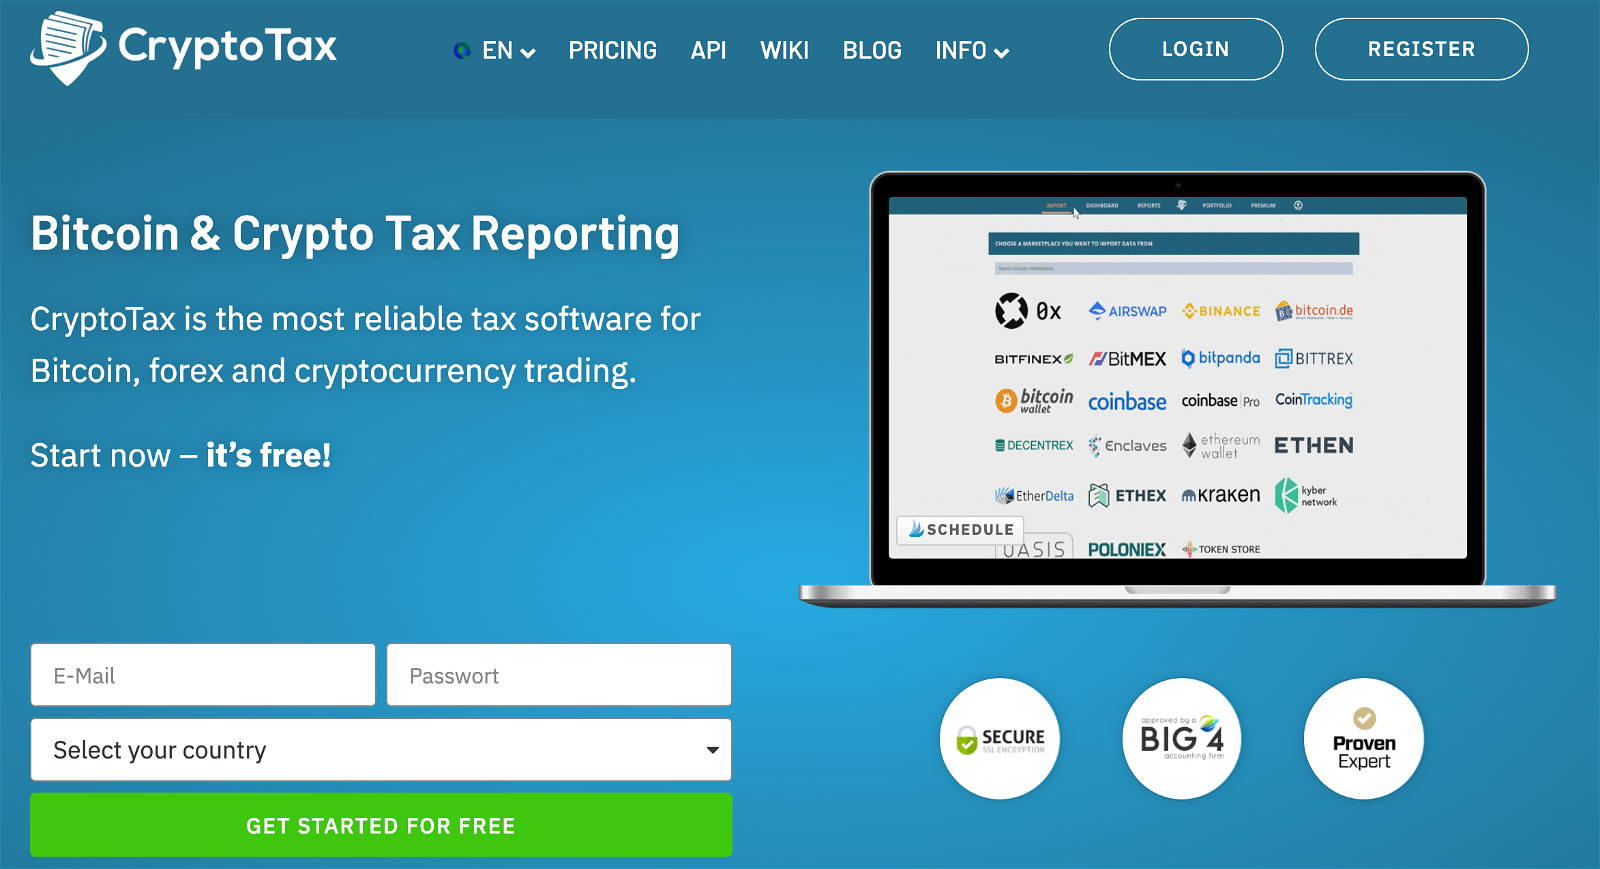 1631493026_603_7-Best-Crypto-Tax-Software-to-Calculate-Taxes-on-Crypto